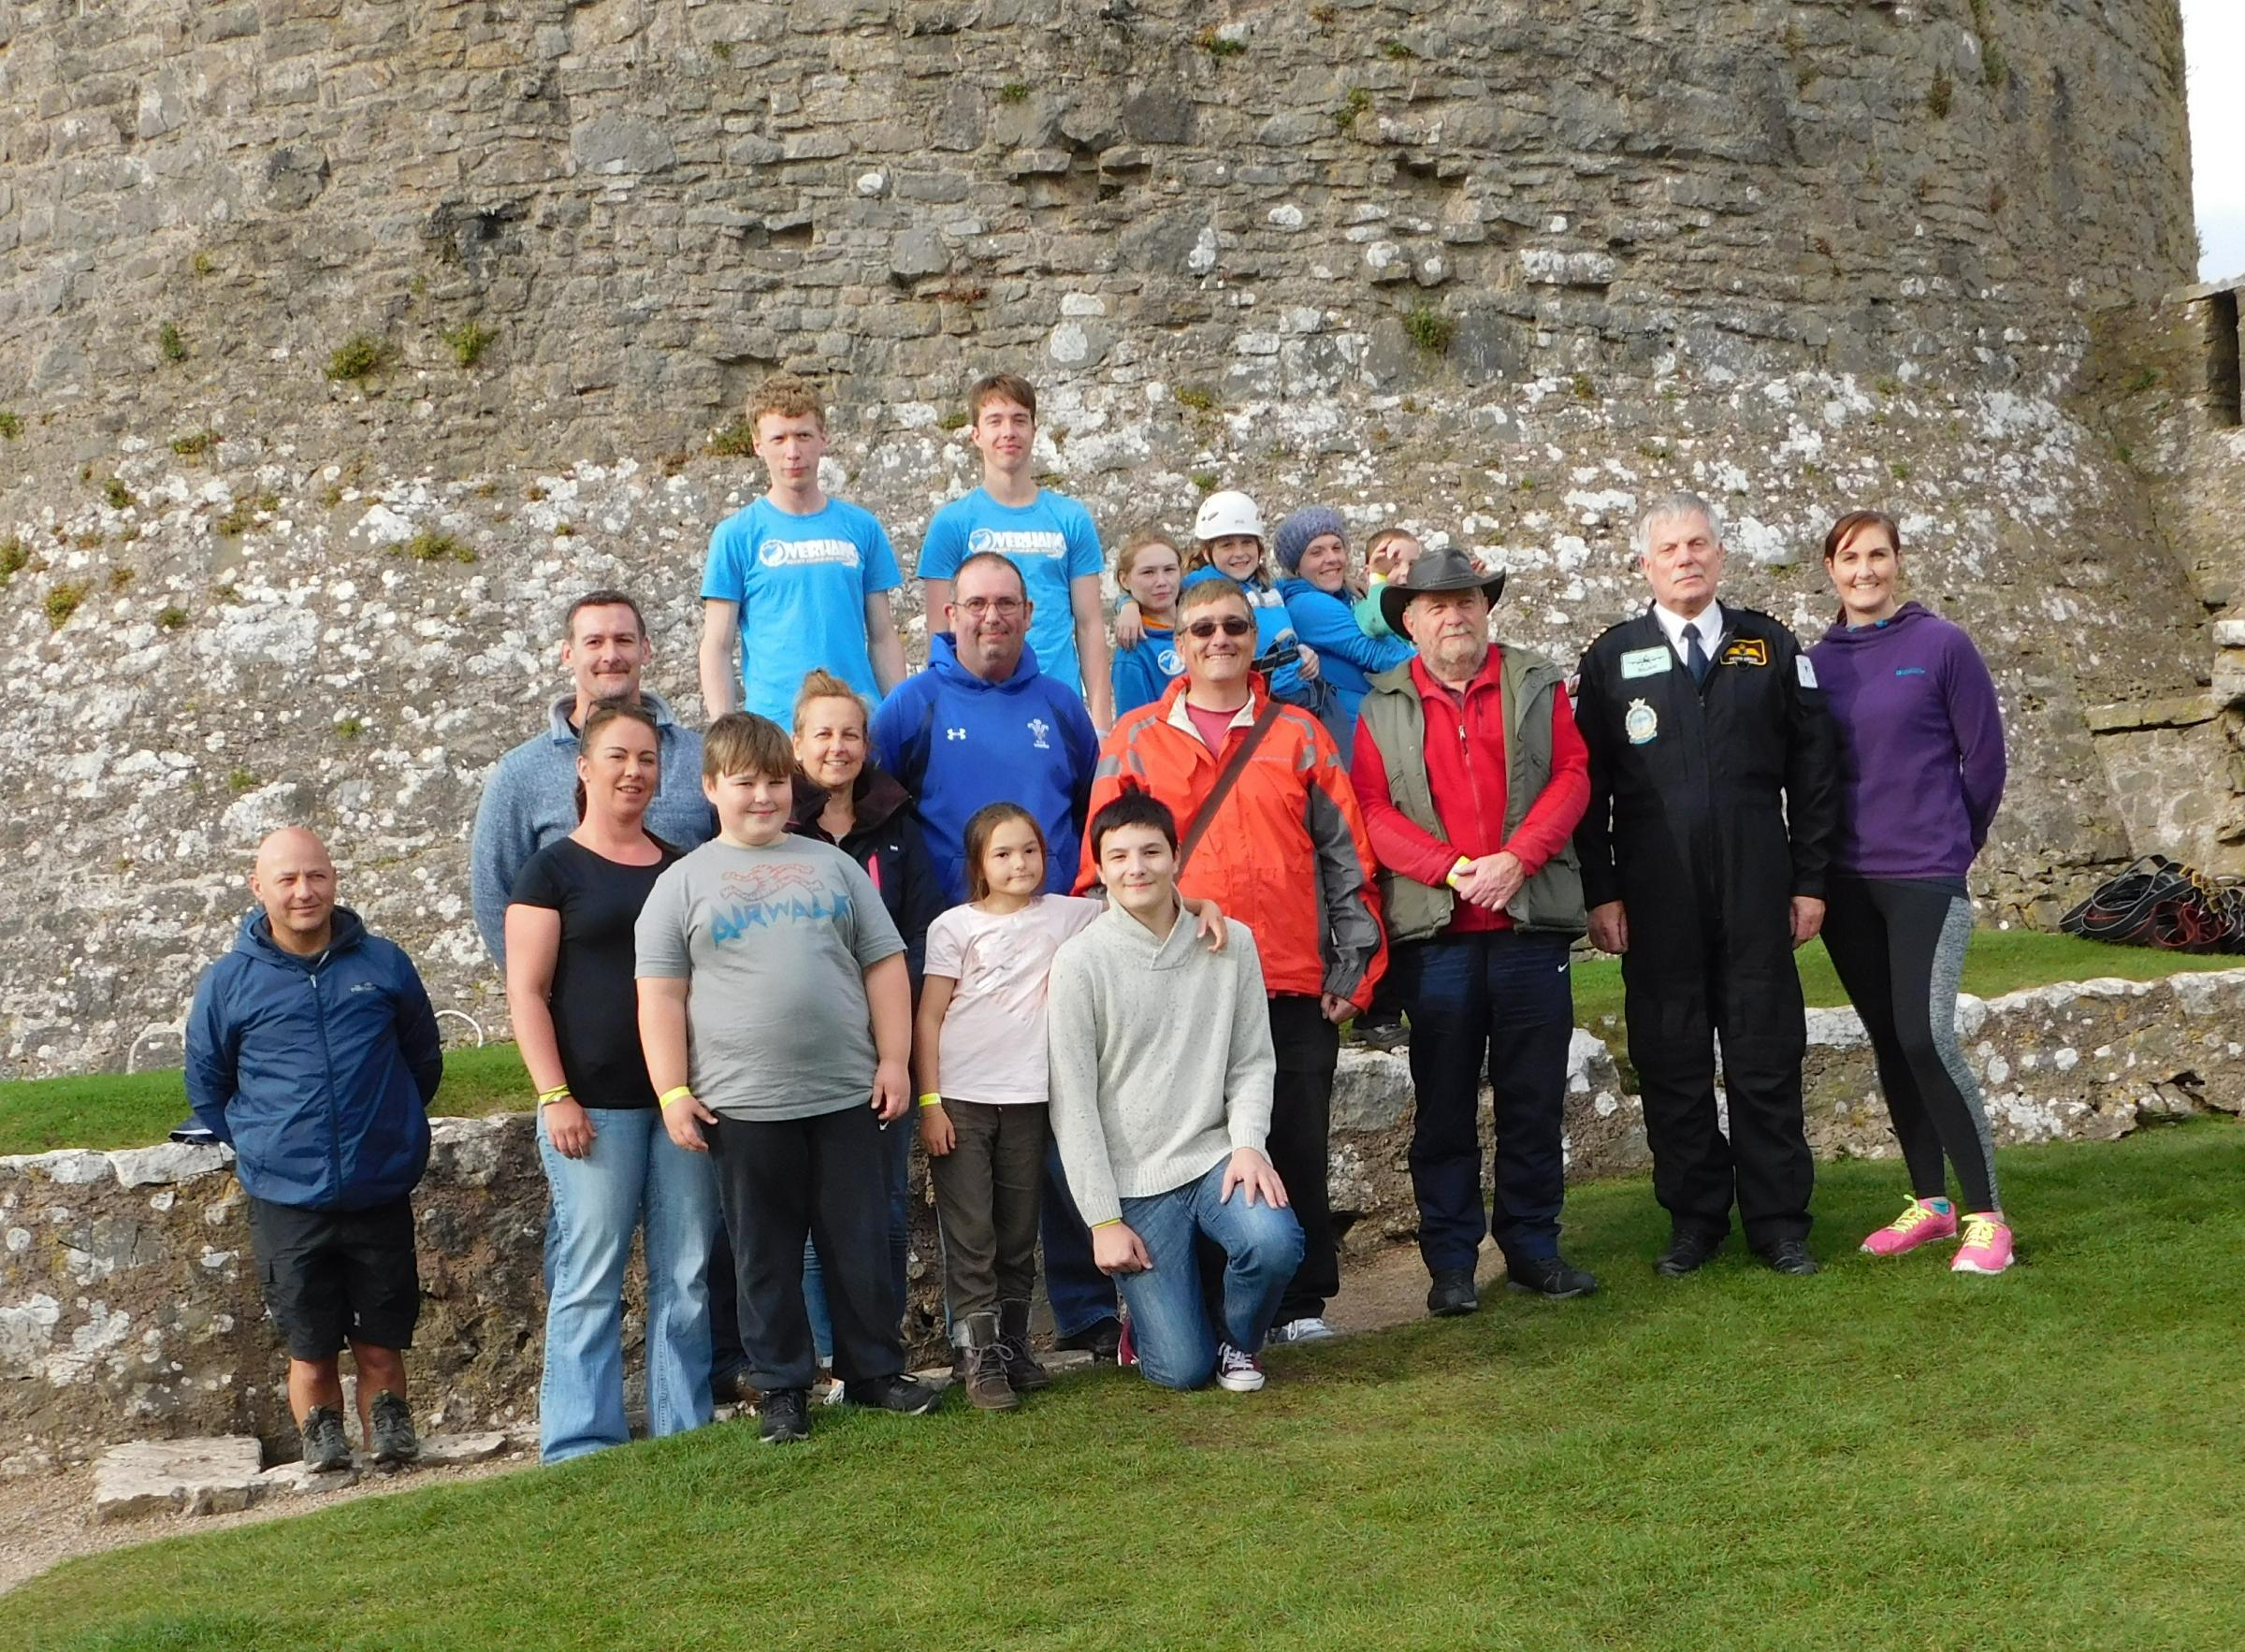 The team raising funds for a community minibus for Pennar at pictured at the based of Pembroke Castle's keep.